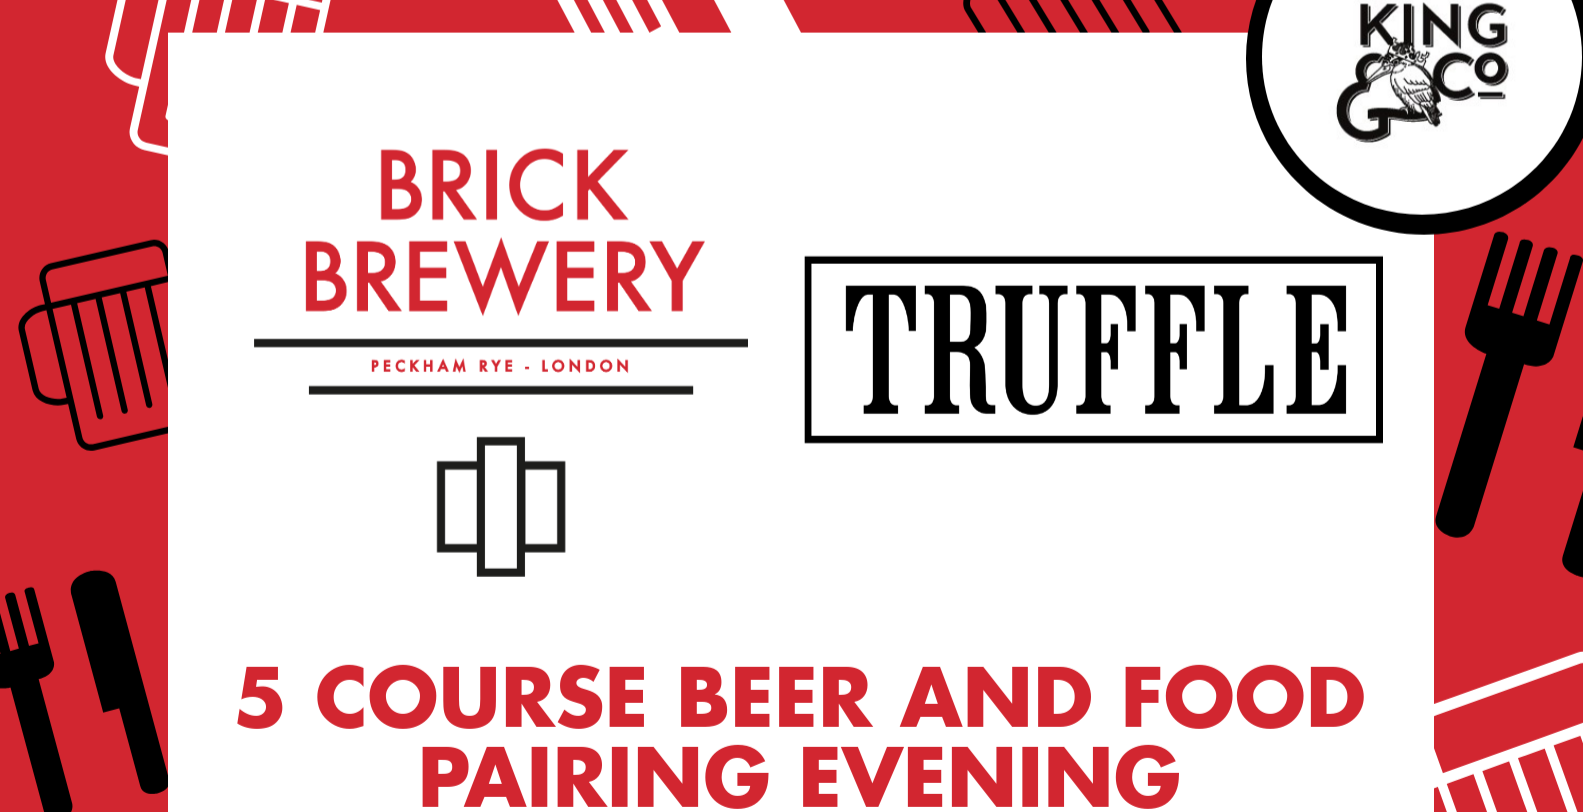 Food & Beer Pairing Evening w/ Truffle & Brick Brewery